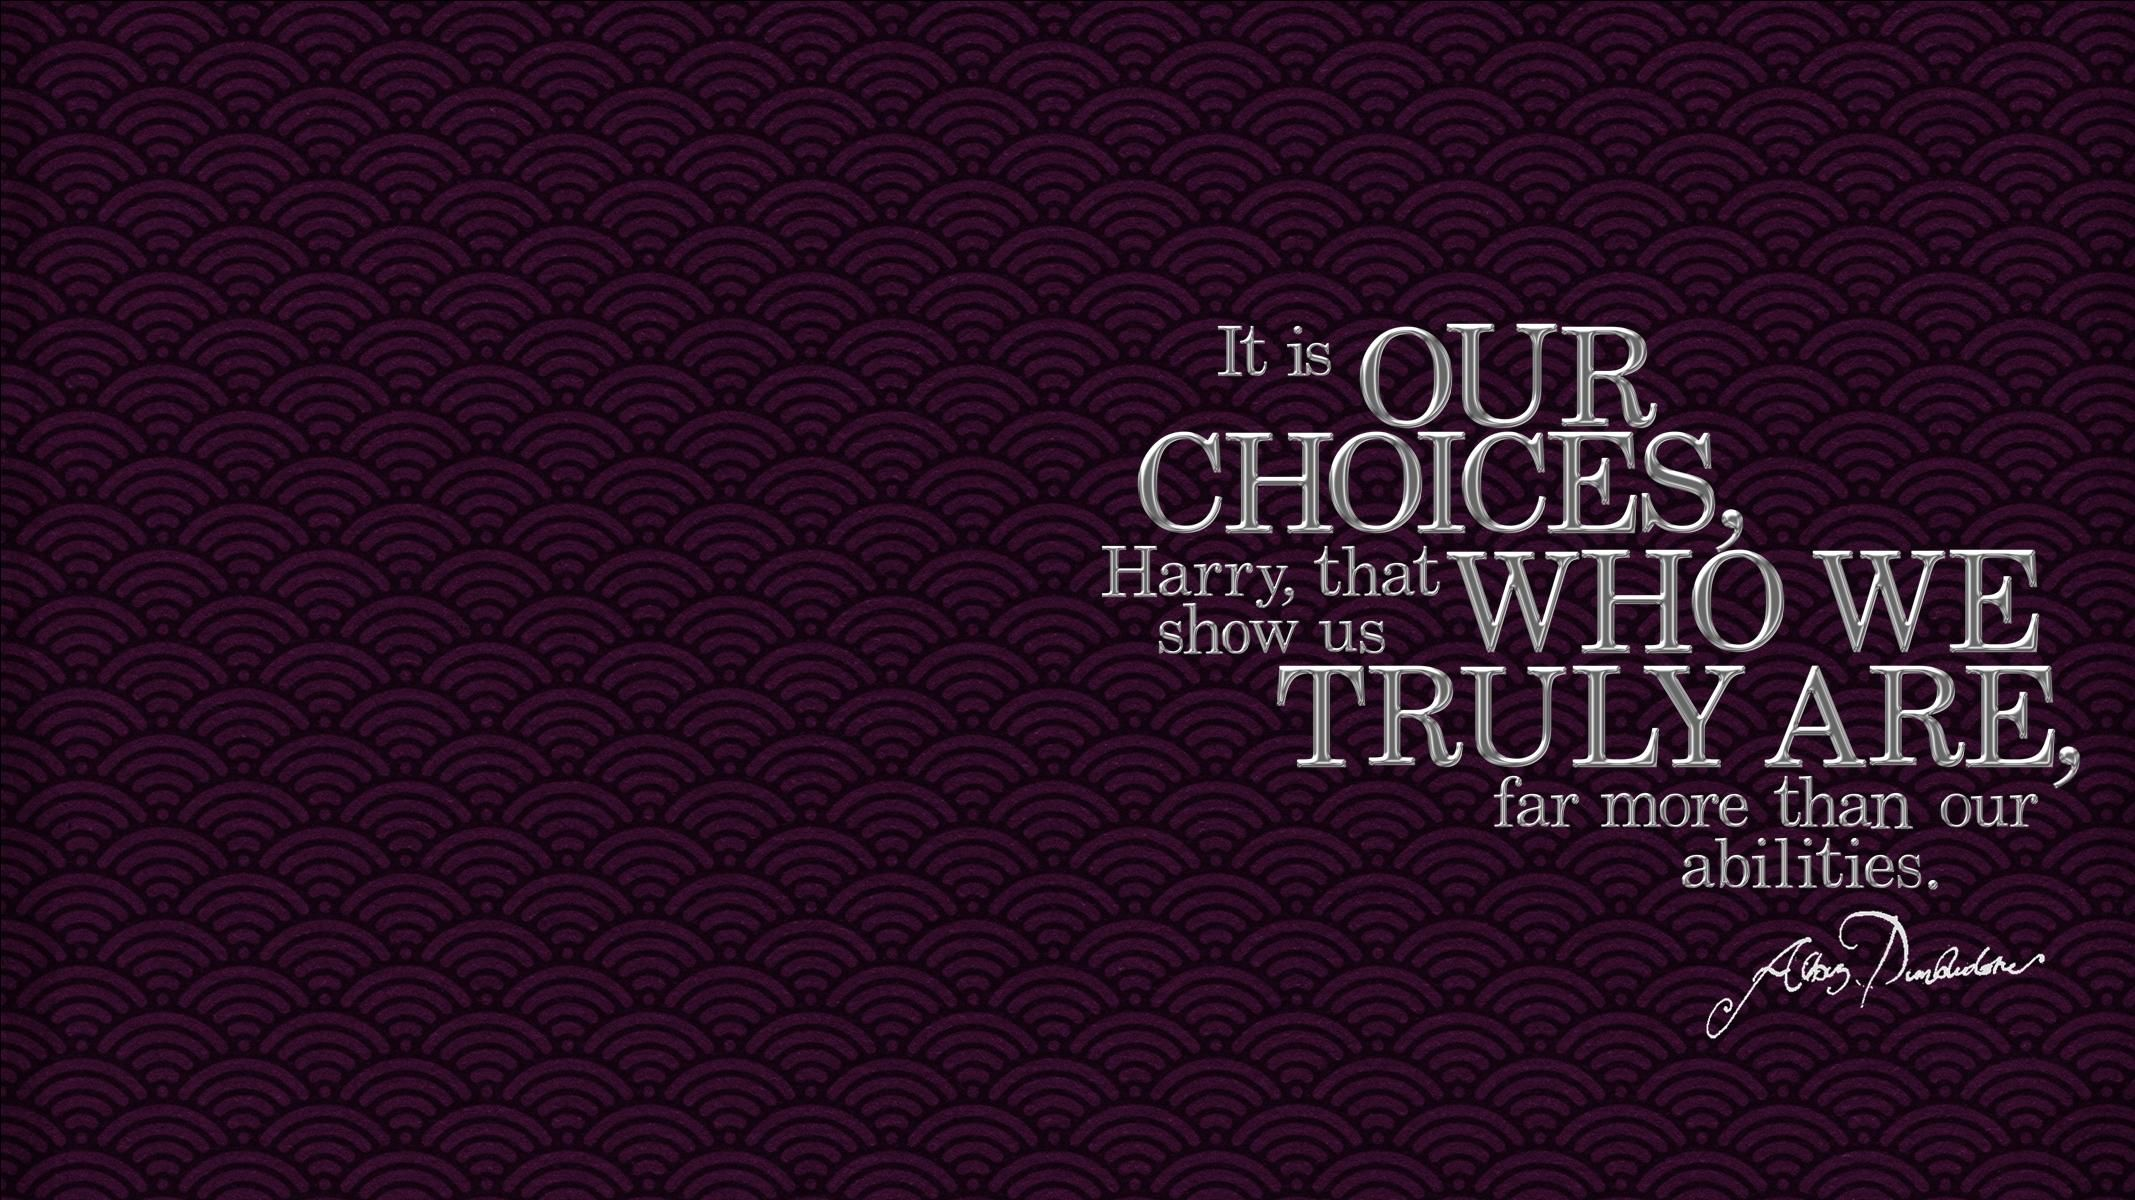 Dumbledore Quote Widescreen Wallpaper Widescreen Wallpaper Made By